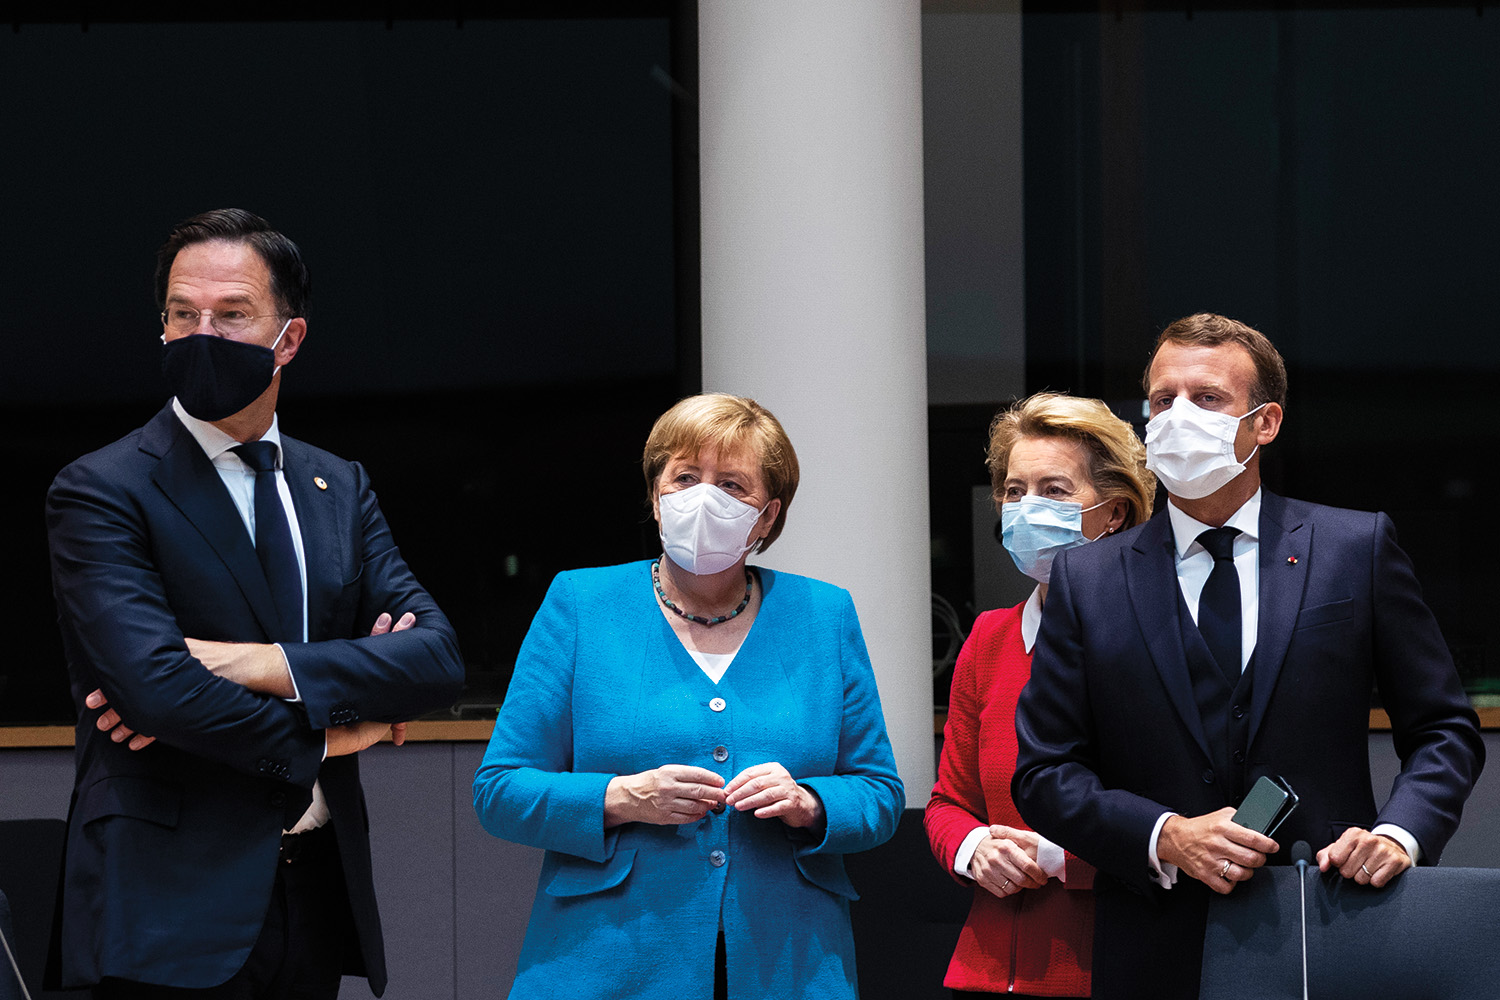 From left: Dutch Prime Minister Mark Rutte, German Chancellor Angela Merkel, European Commission President Ursula von der Leyen, and French President Emmanuel Macron before the start of the first in-person EU summit of the pandemic on July 18.